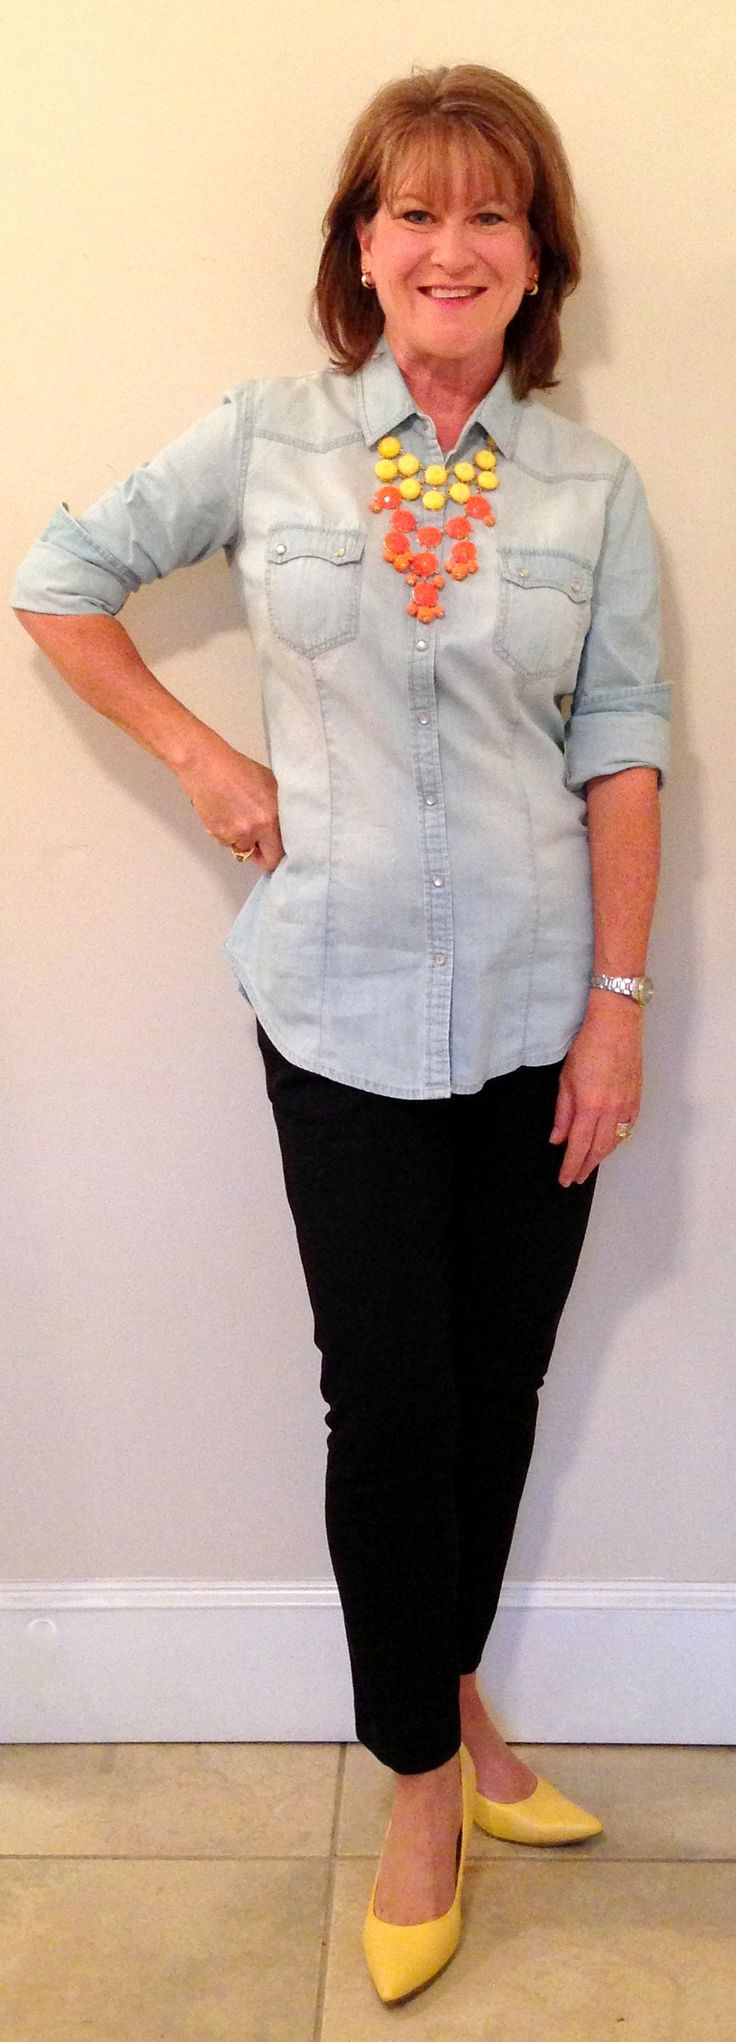 chambray outfits for women | oh chambray how i love you the versatility of a good chambray shirt ...